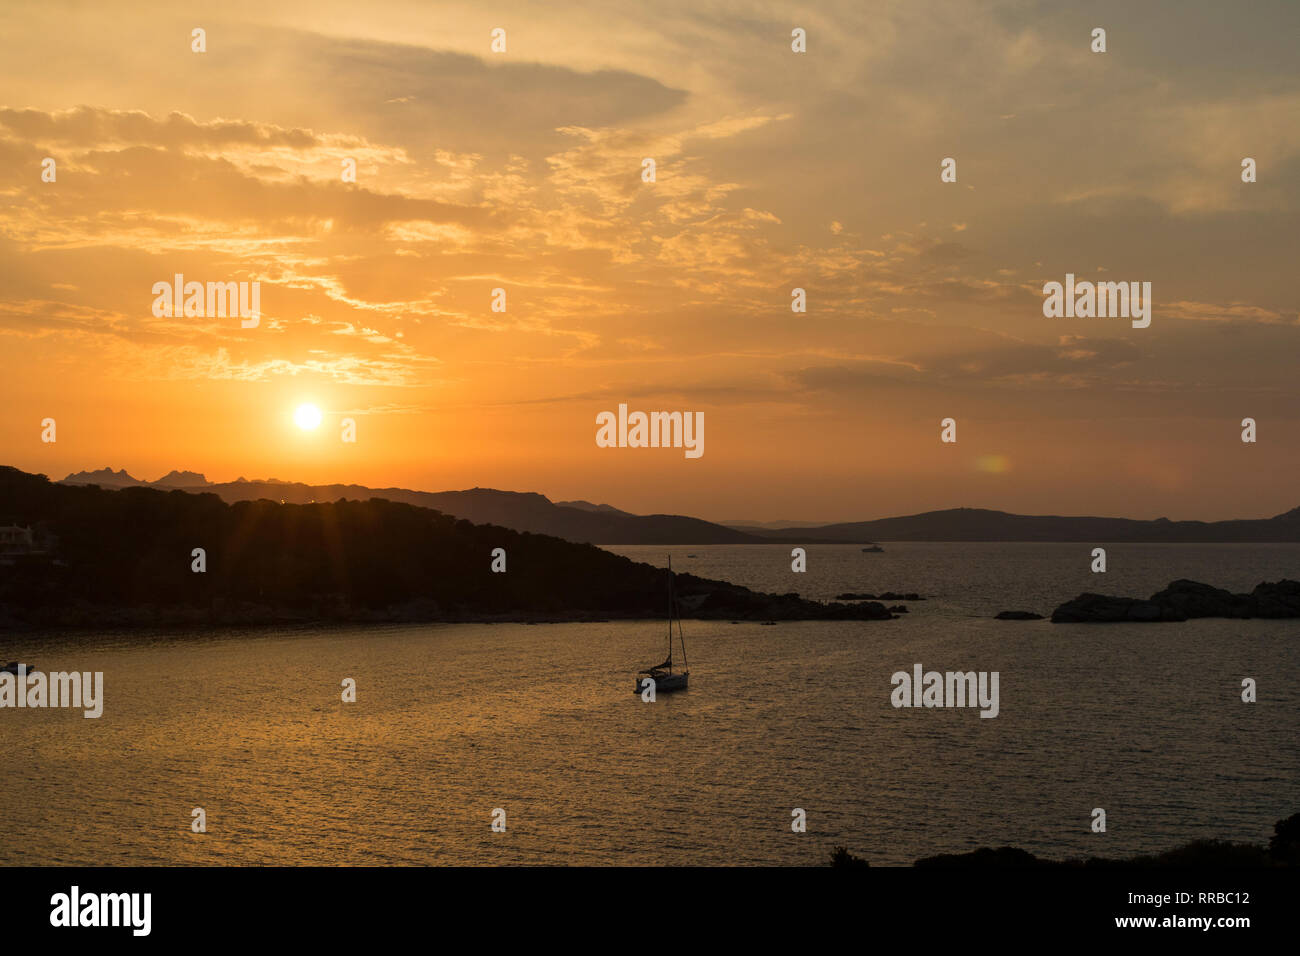 Colourful Golden Sunset View: Coastline of Northern Sardinia and the Islands of La Maddalena With Vivid Red Sky. - Stock Image